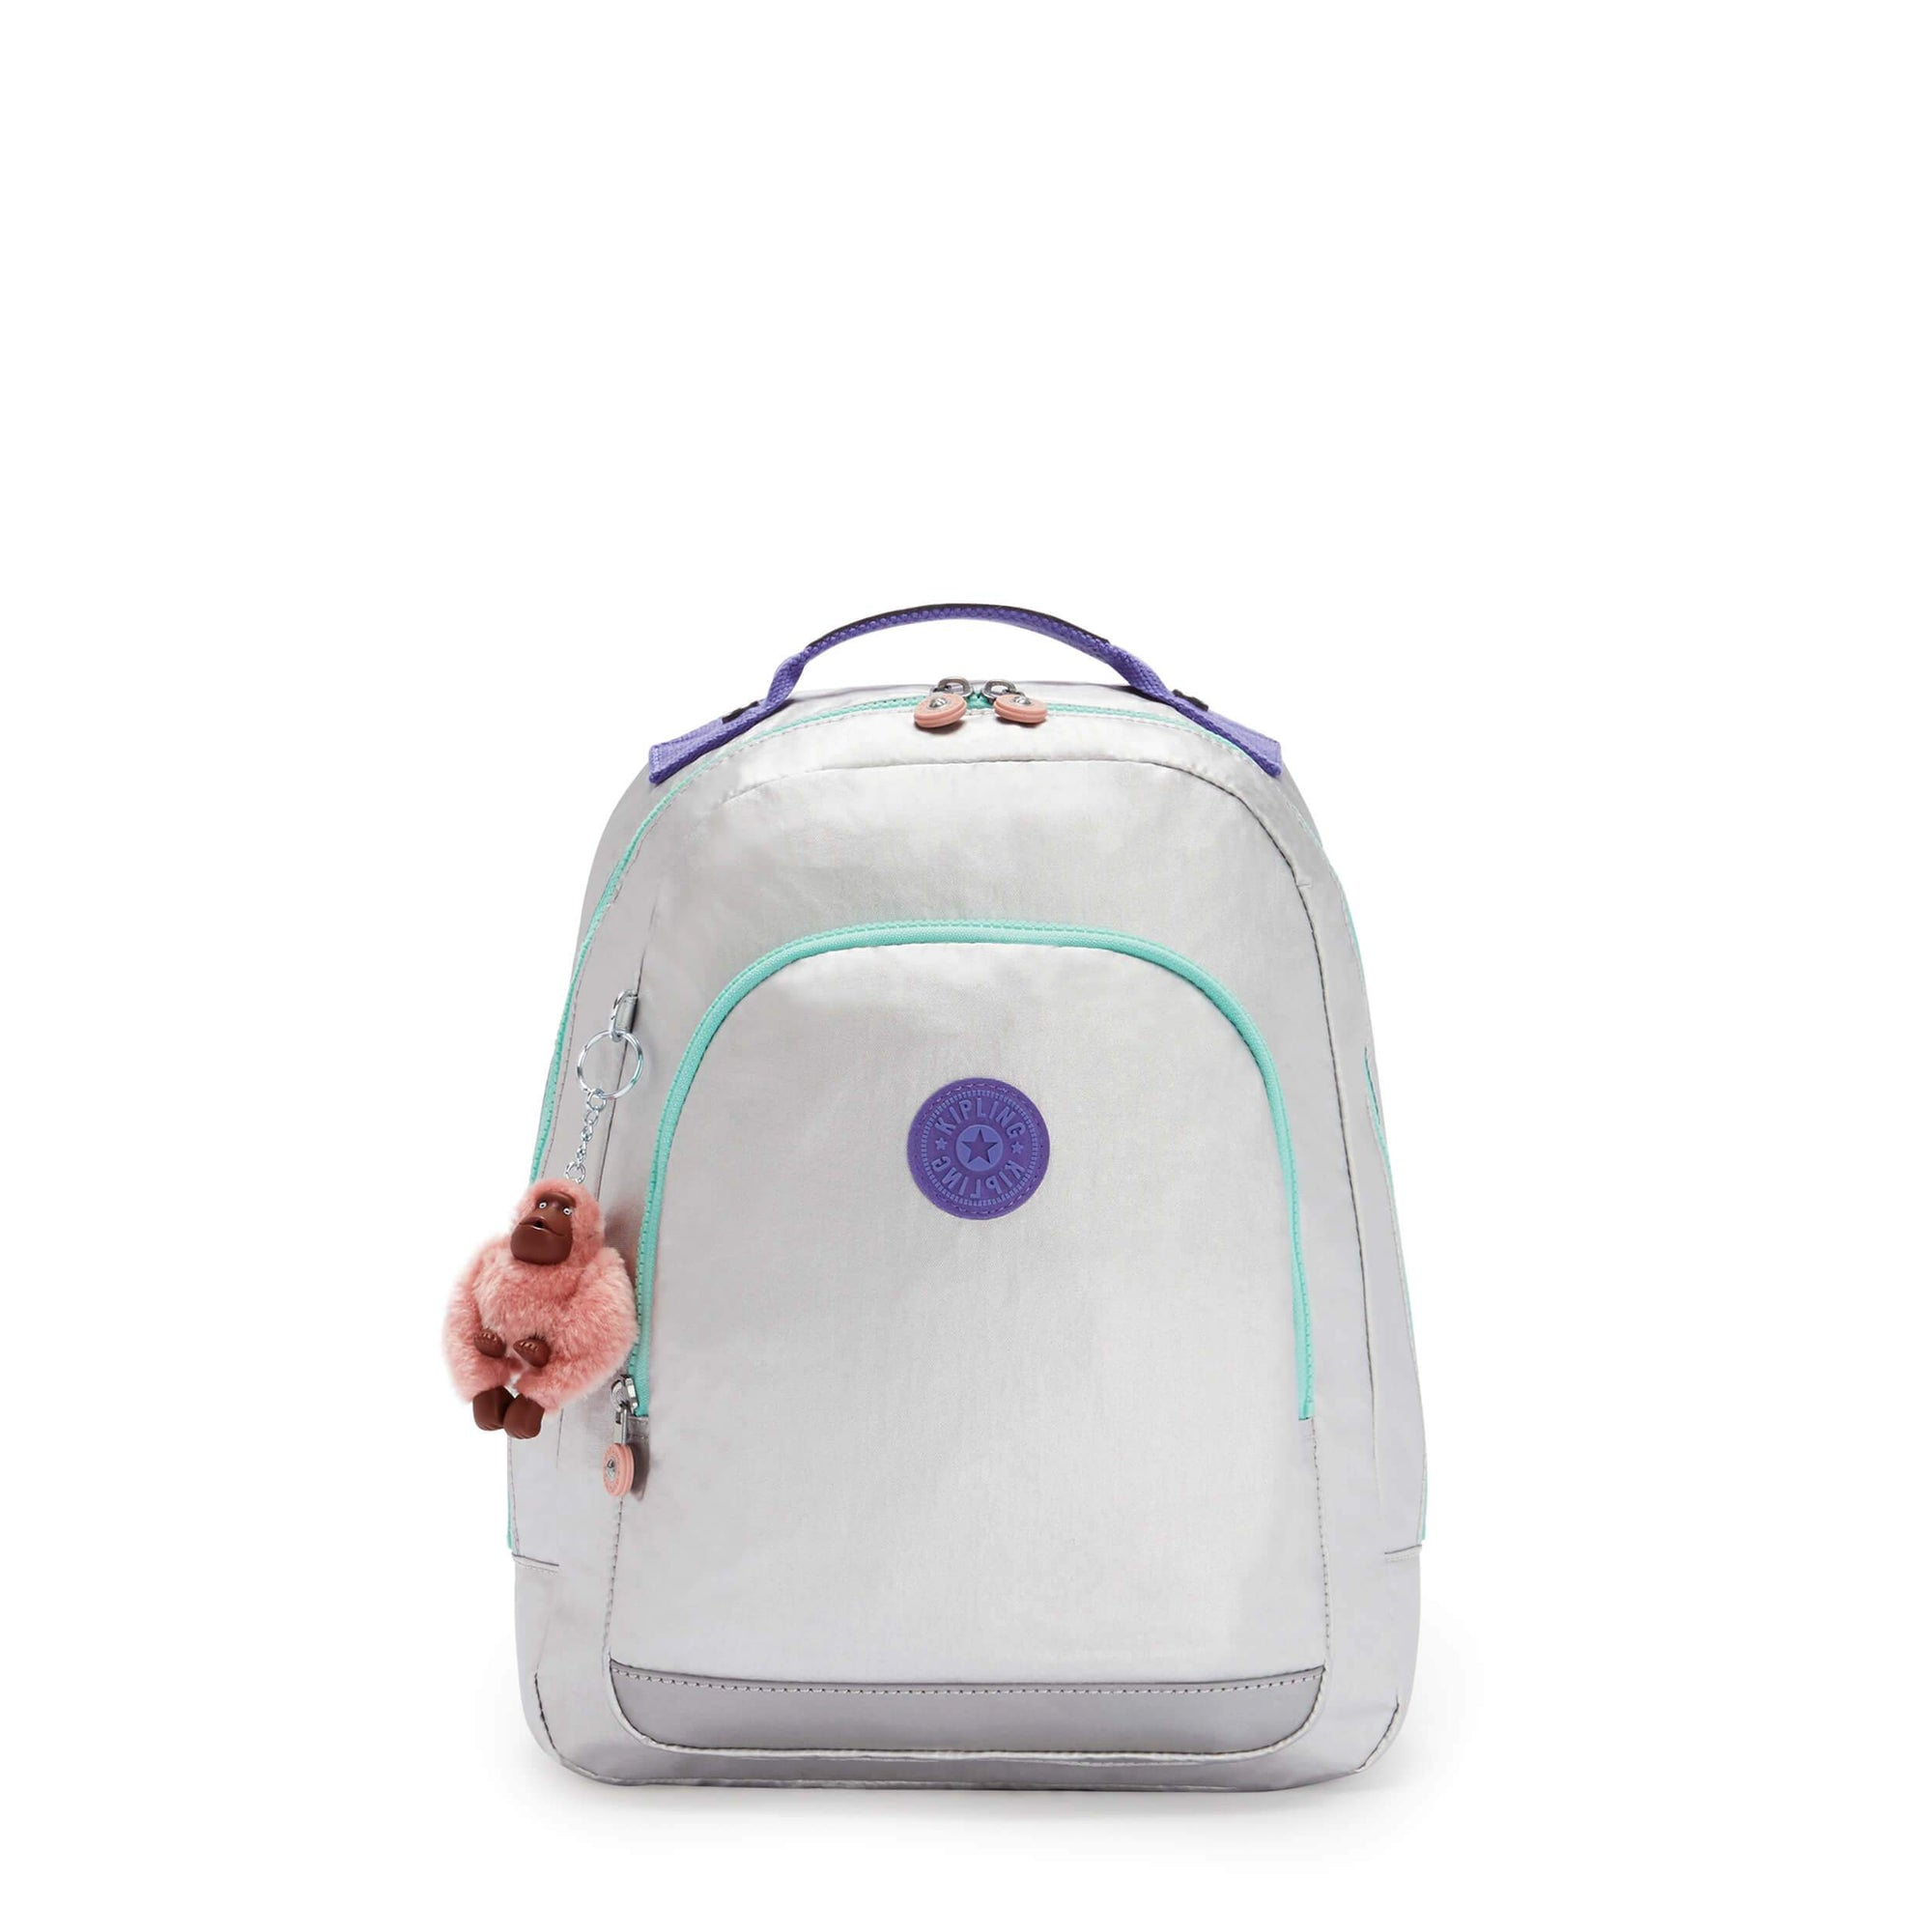 Mochila Kipling Class Room S Polished Gr Bl KI721865E